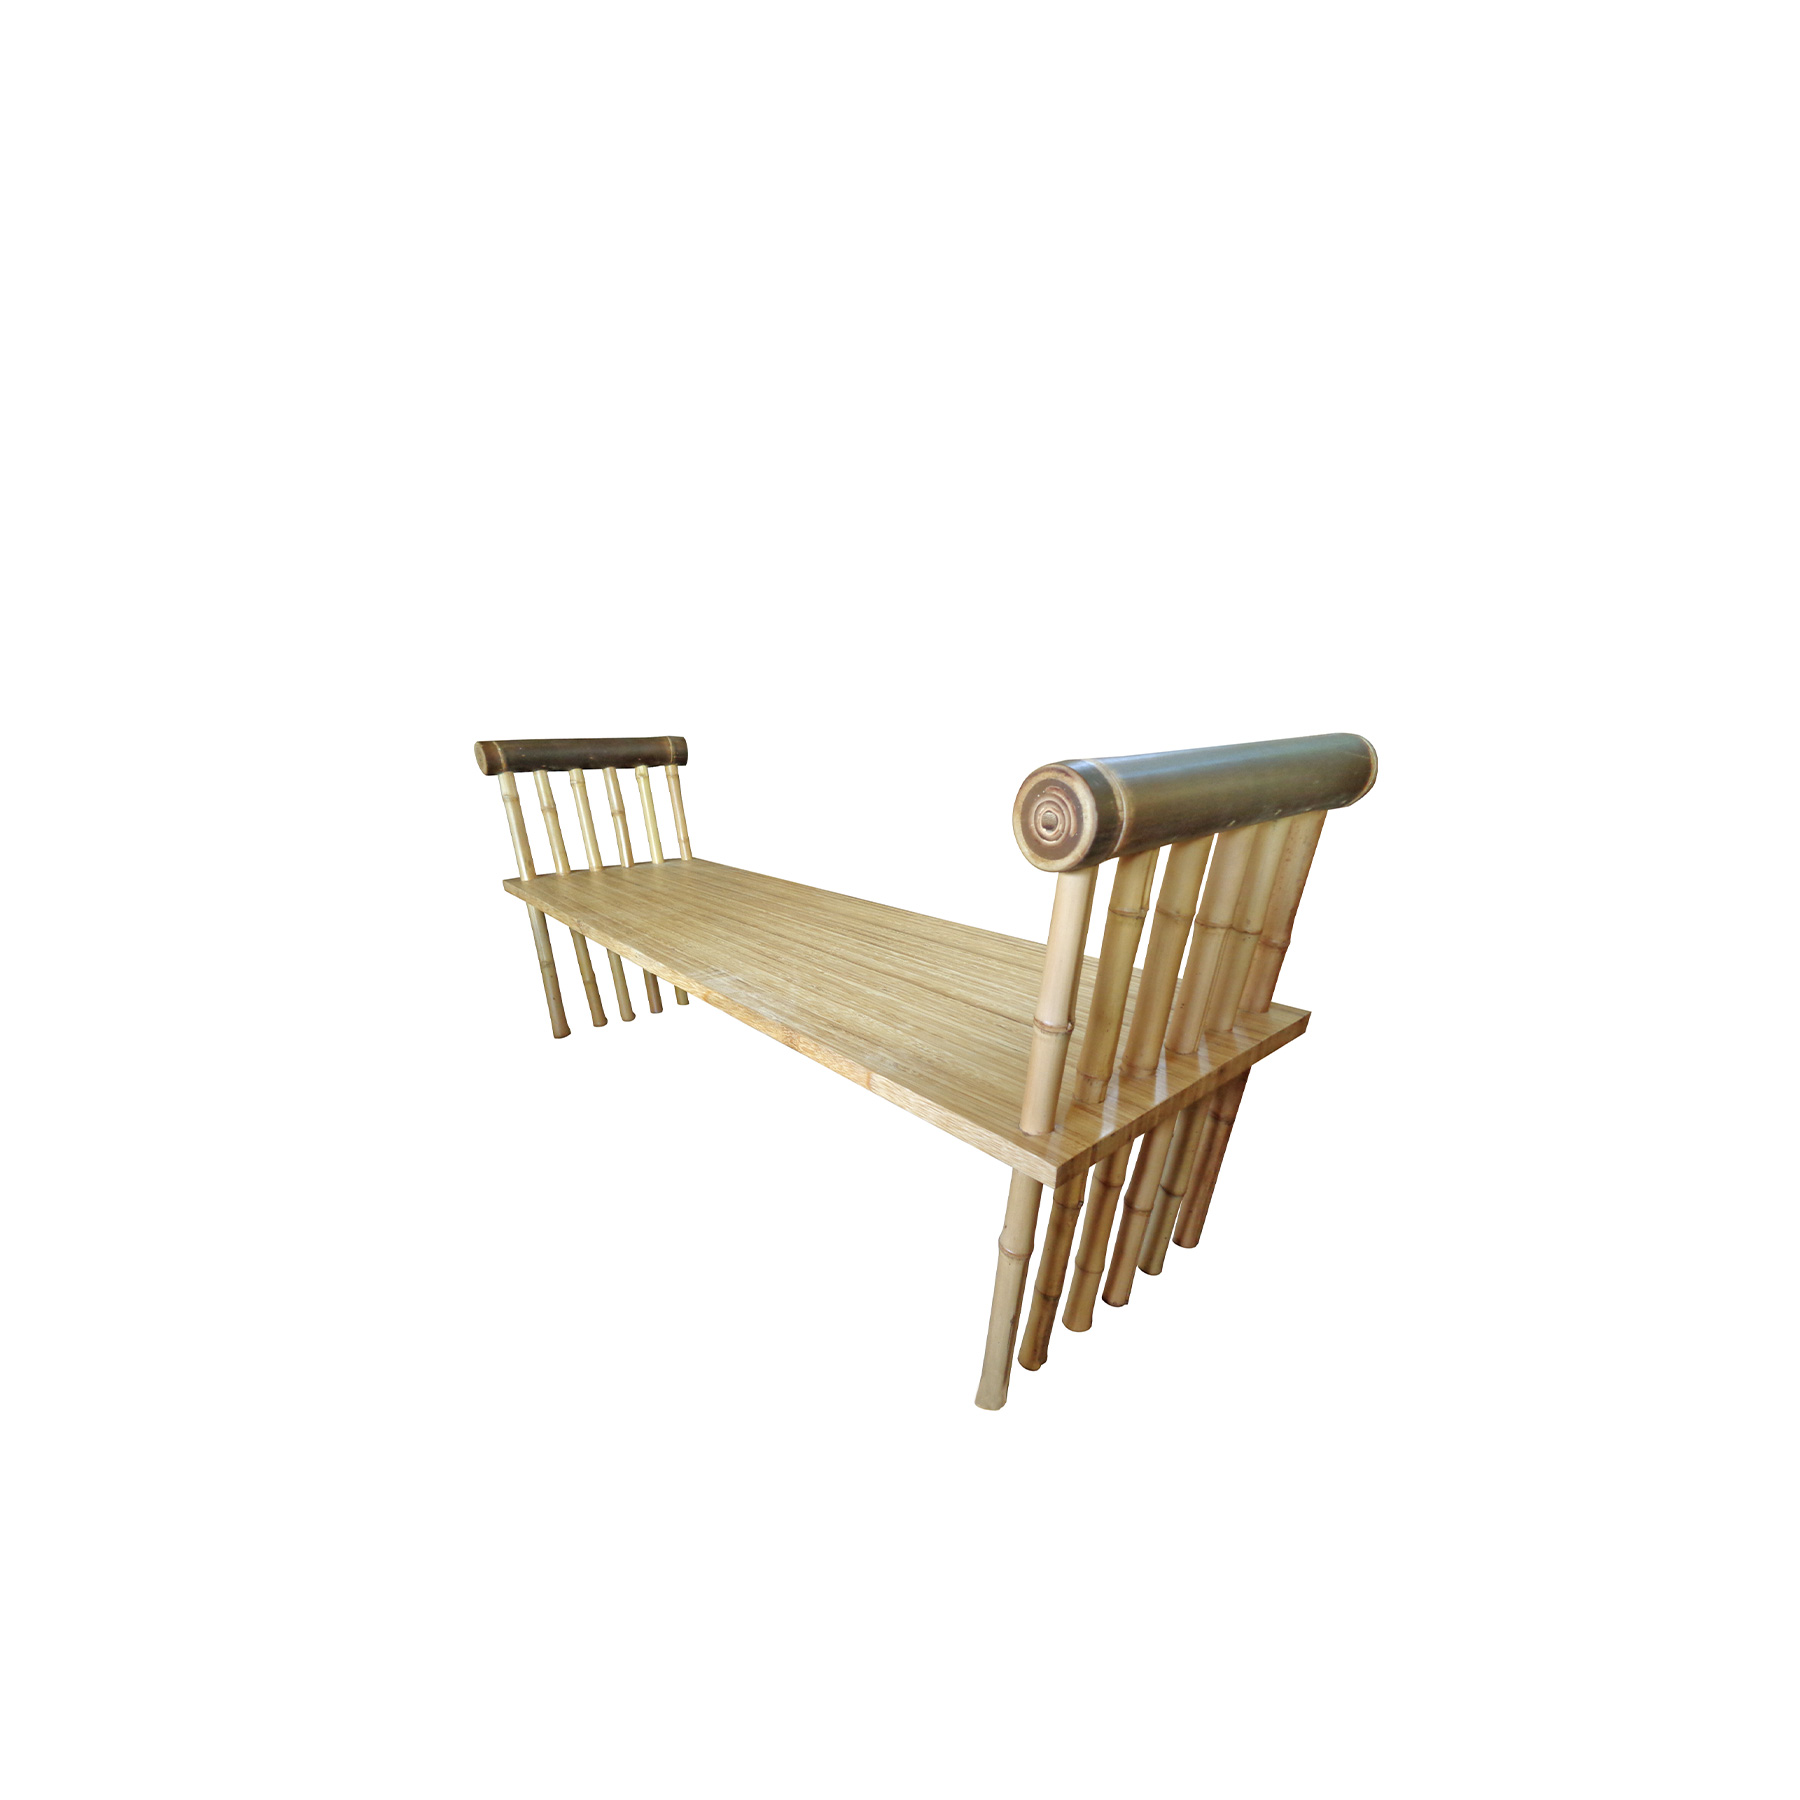 Dawn Bench - <p>Our bamboo is carefully selected from the river valleys and mountains of the islands of Bali and Java in Indonesia. We harvest from clumps that, once established, grow a new generation of shoots each year. It takes just a few months for a new bamboo shoot to reach its full height, and in three years it becomes timber ready for harvest. Our craftsmen combine their traditional skills with modern carpentry techniques to produce our all-bamboo furniture. They transform poles of bamboo into floors, walls, baskets, railings, beds, chairs, kitchens, ceilings, stairs, and tables.<br /> From customised pieces to interior designs, our furniture brings bamboo's unique warmth into any space, across the world. IBUKU's team of designers create innovative, hand-made masterpieces including stools, chairs, tables, lounges and beds. Our bespoke interior basket structures, screen panels and sculptures bring a sense of wonder into the everyday.</p> <p>IBUKU takes great care to ensure that only the mature poles are harvested, creating an incentive for the bamboo farmers to allow the younger shoots to grow to maturity for subsequent years' harvests.</p>  | Matter of Stuff